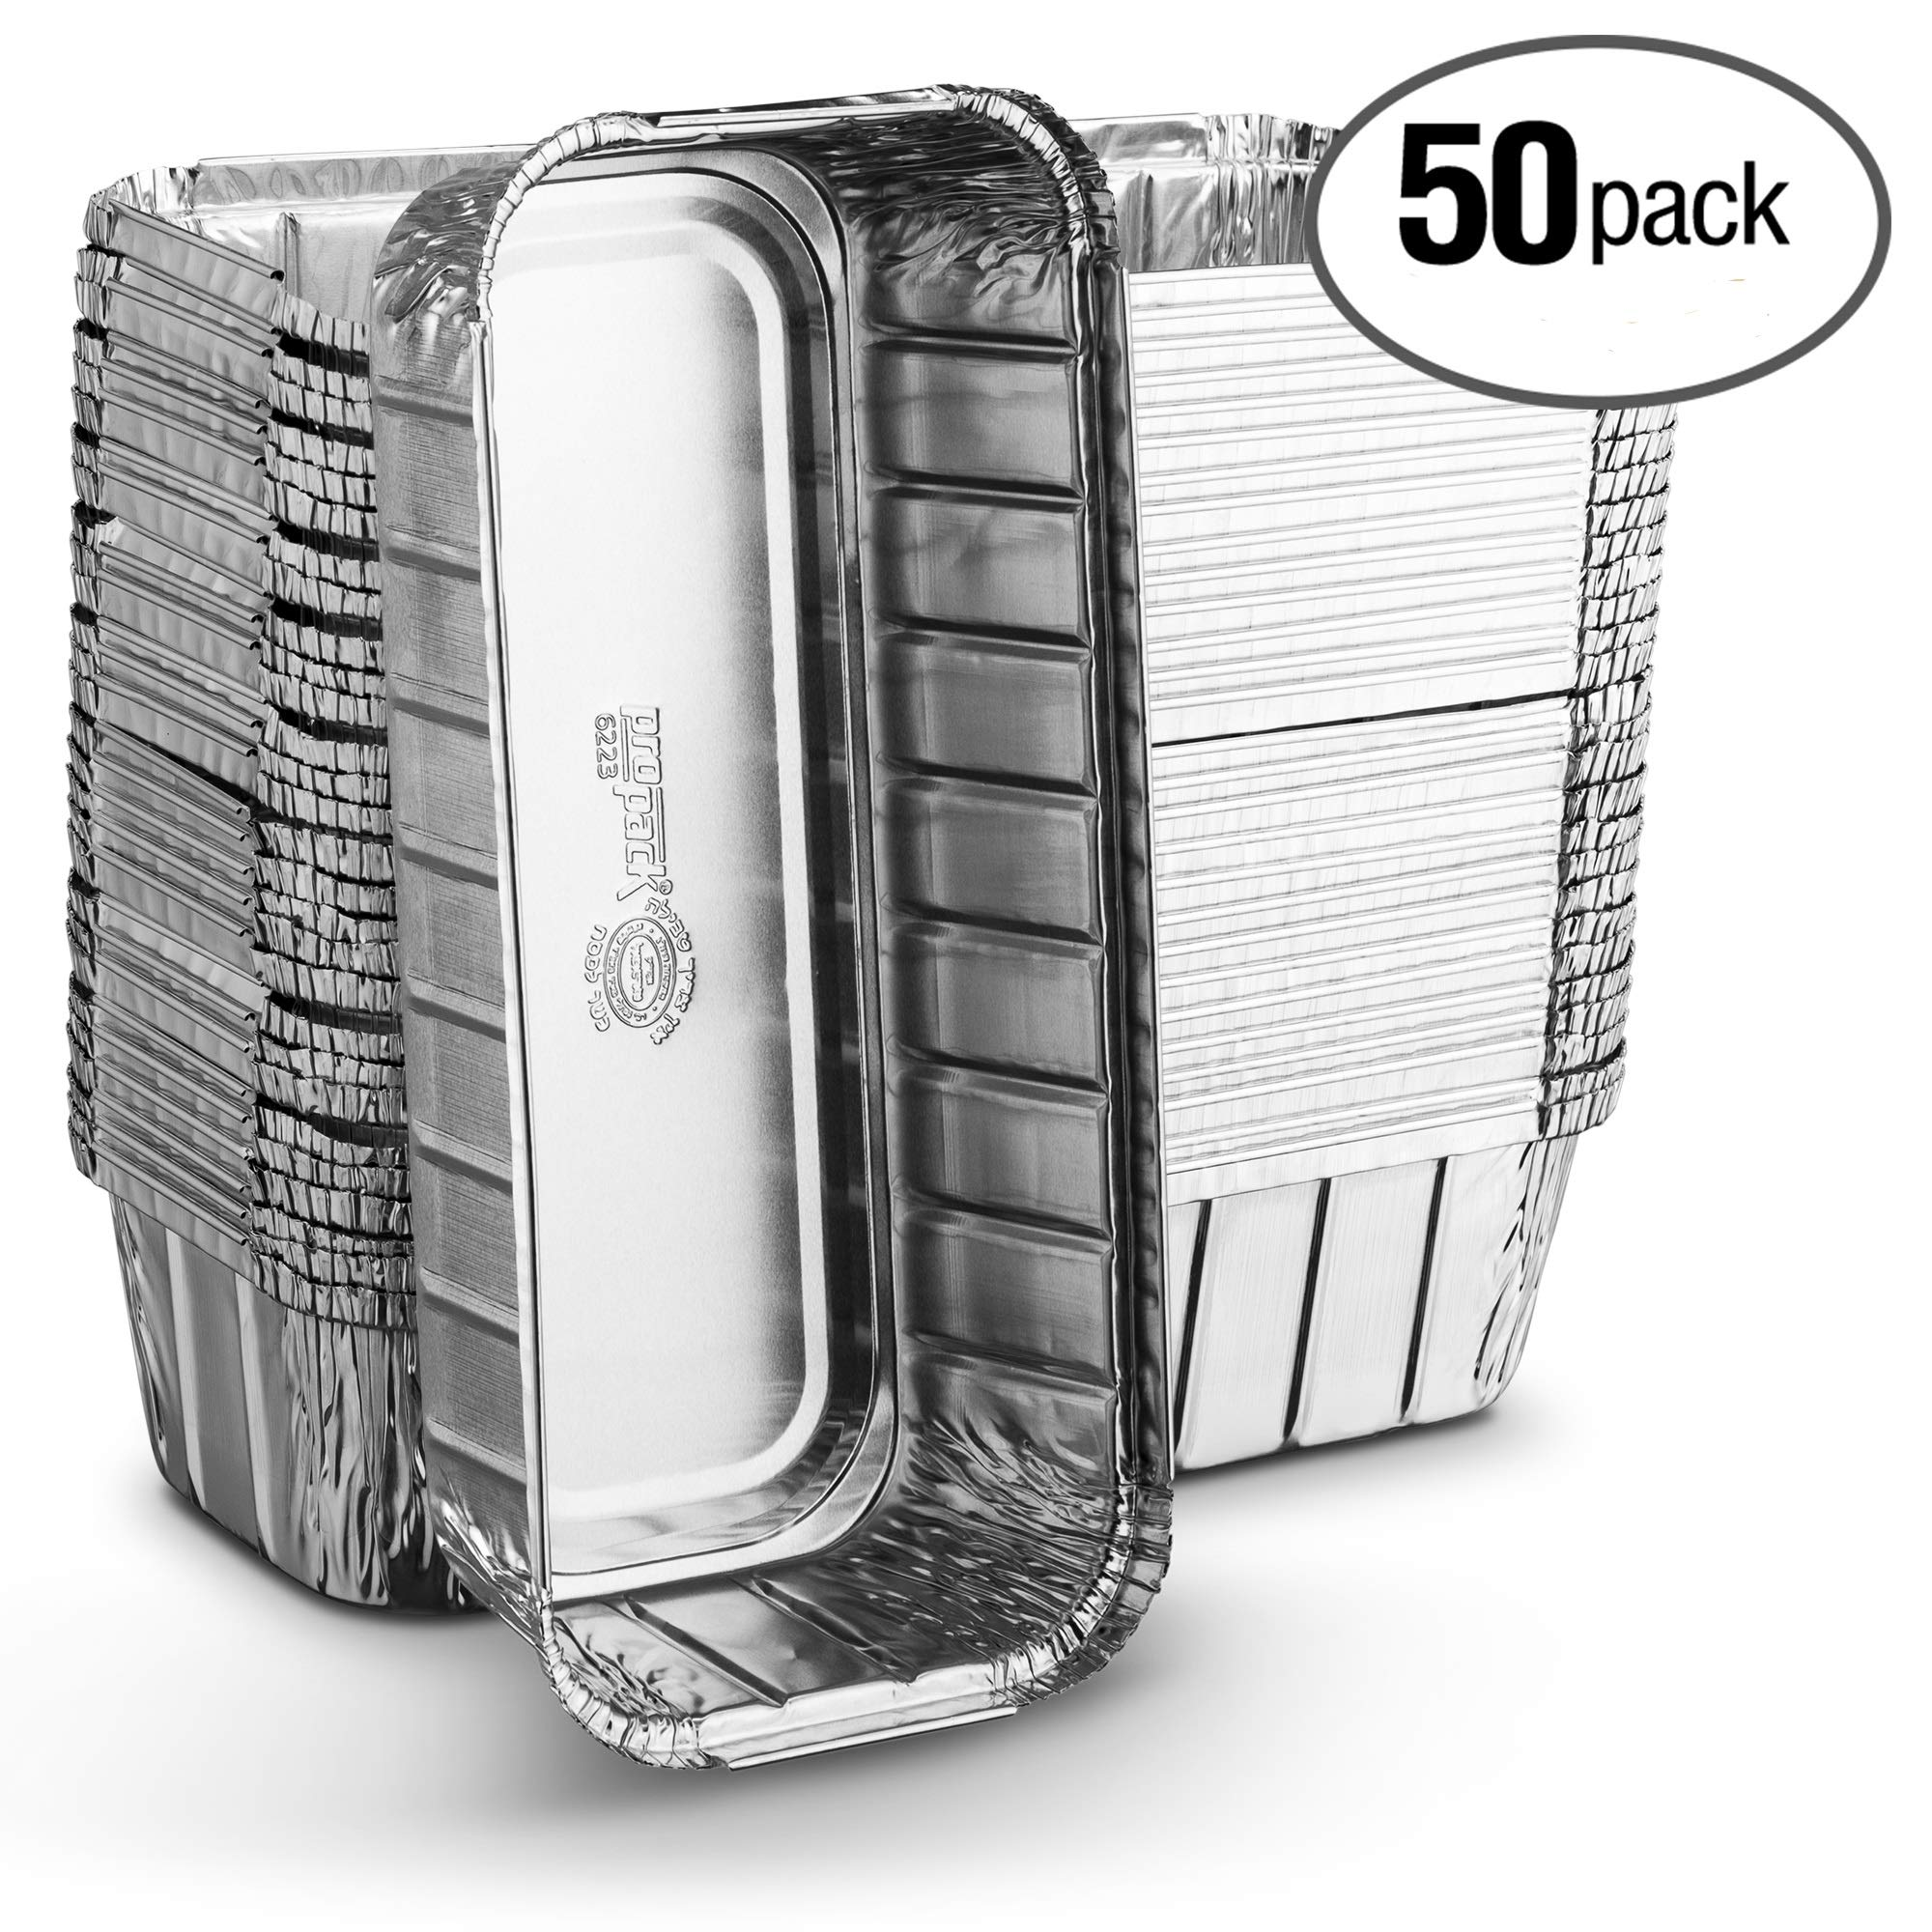 Propack Aluminum Disposable Rectangle 3 Pound Loaf Pans For Serving, Baking, Cooking, Roasting, Broiling, Cakes, 10.5'' x 5'' x 2.5'' Pack of 50